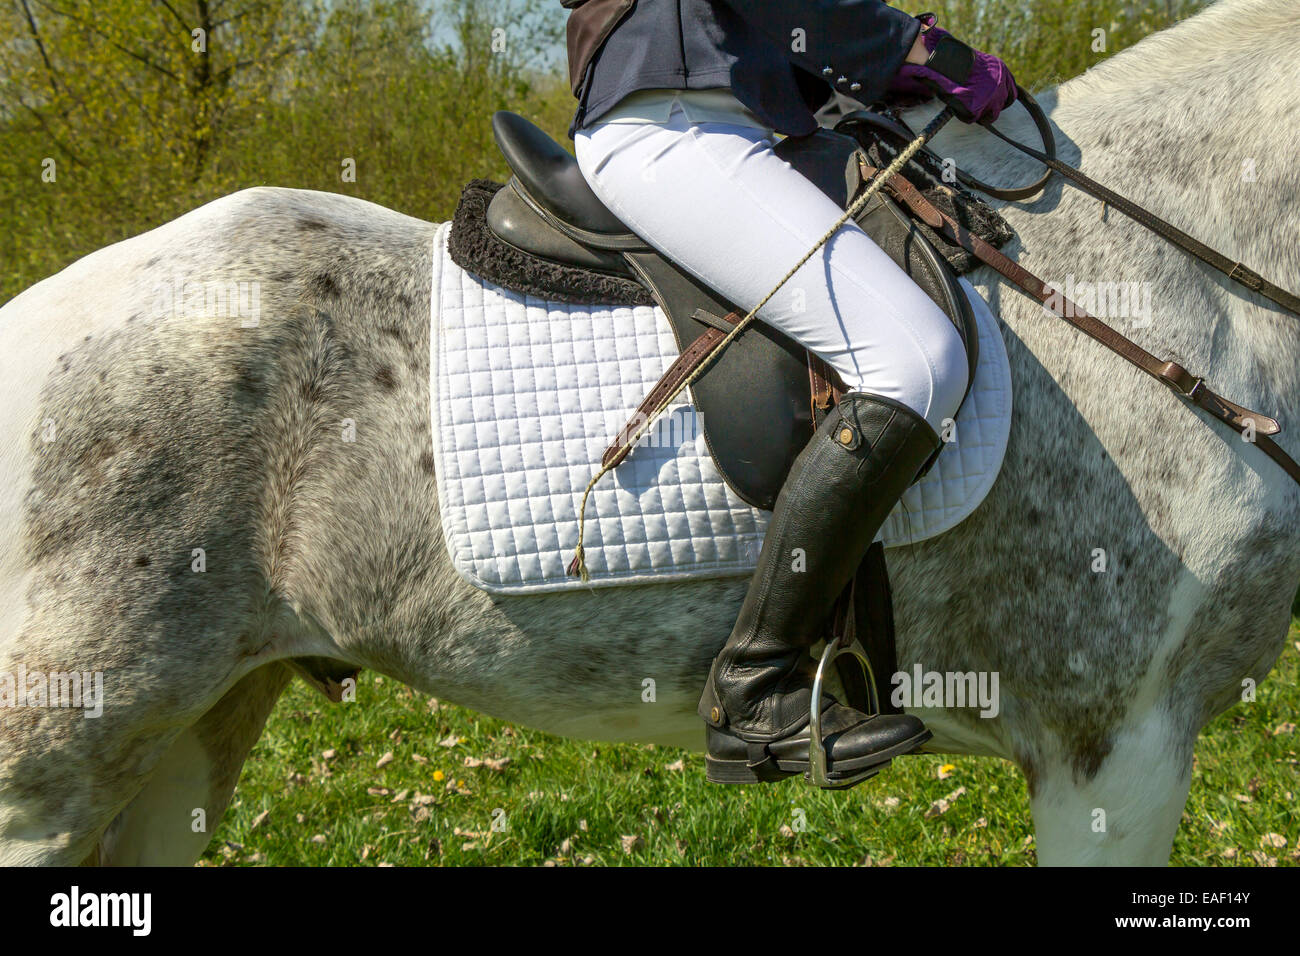 Clouse-up of Young girl rider and horse - Stock Image